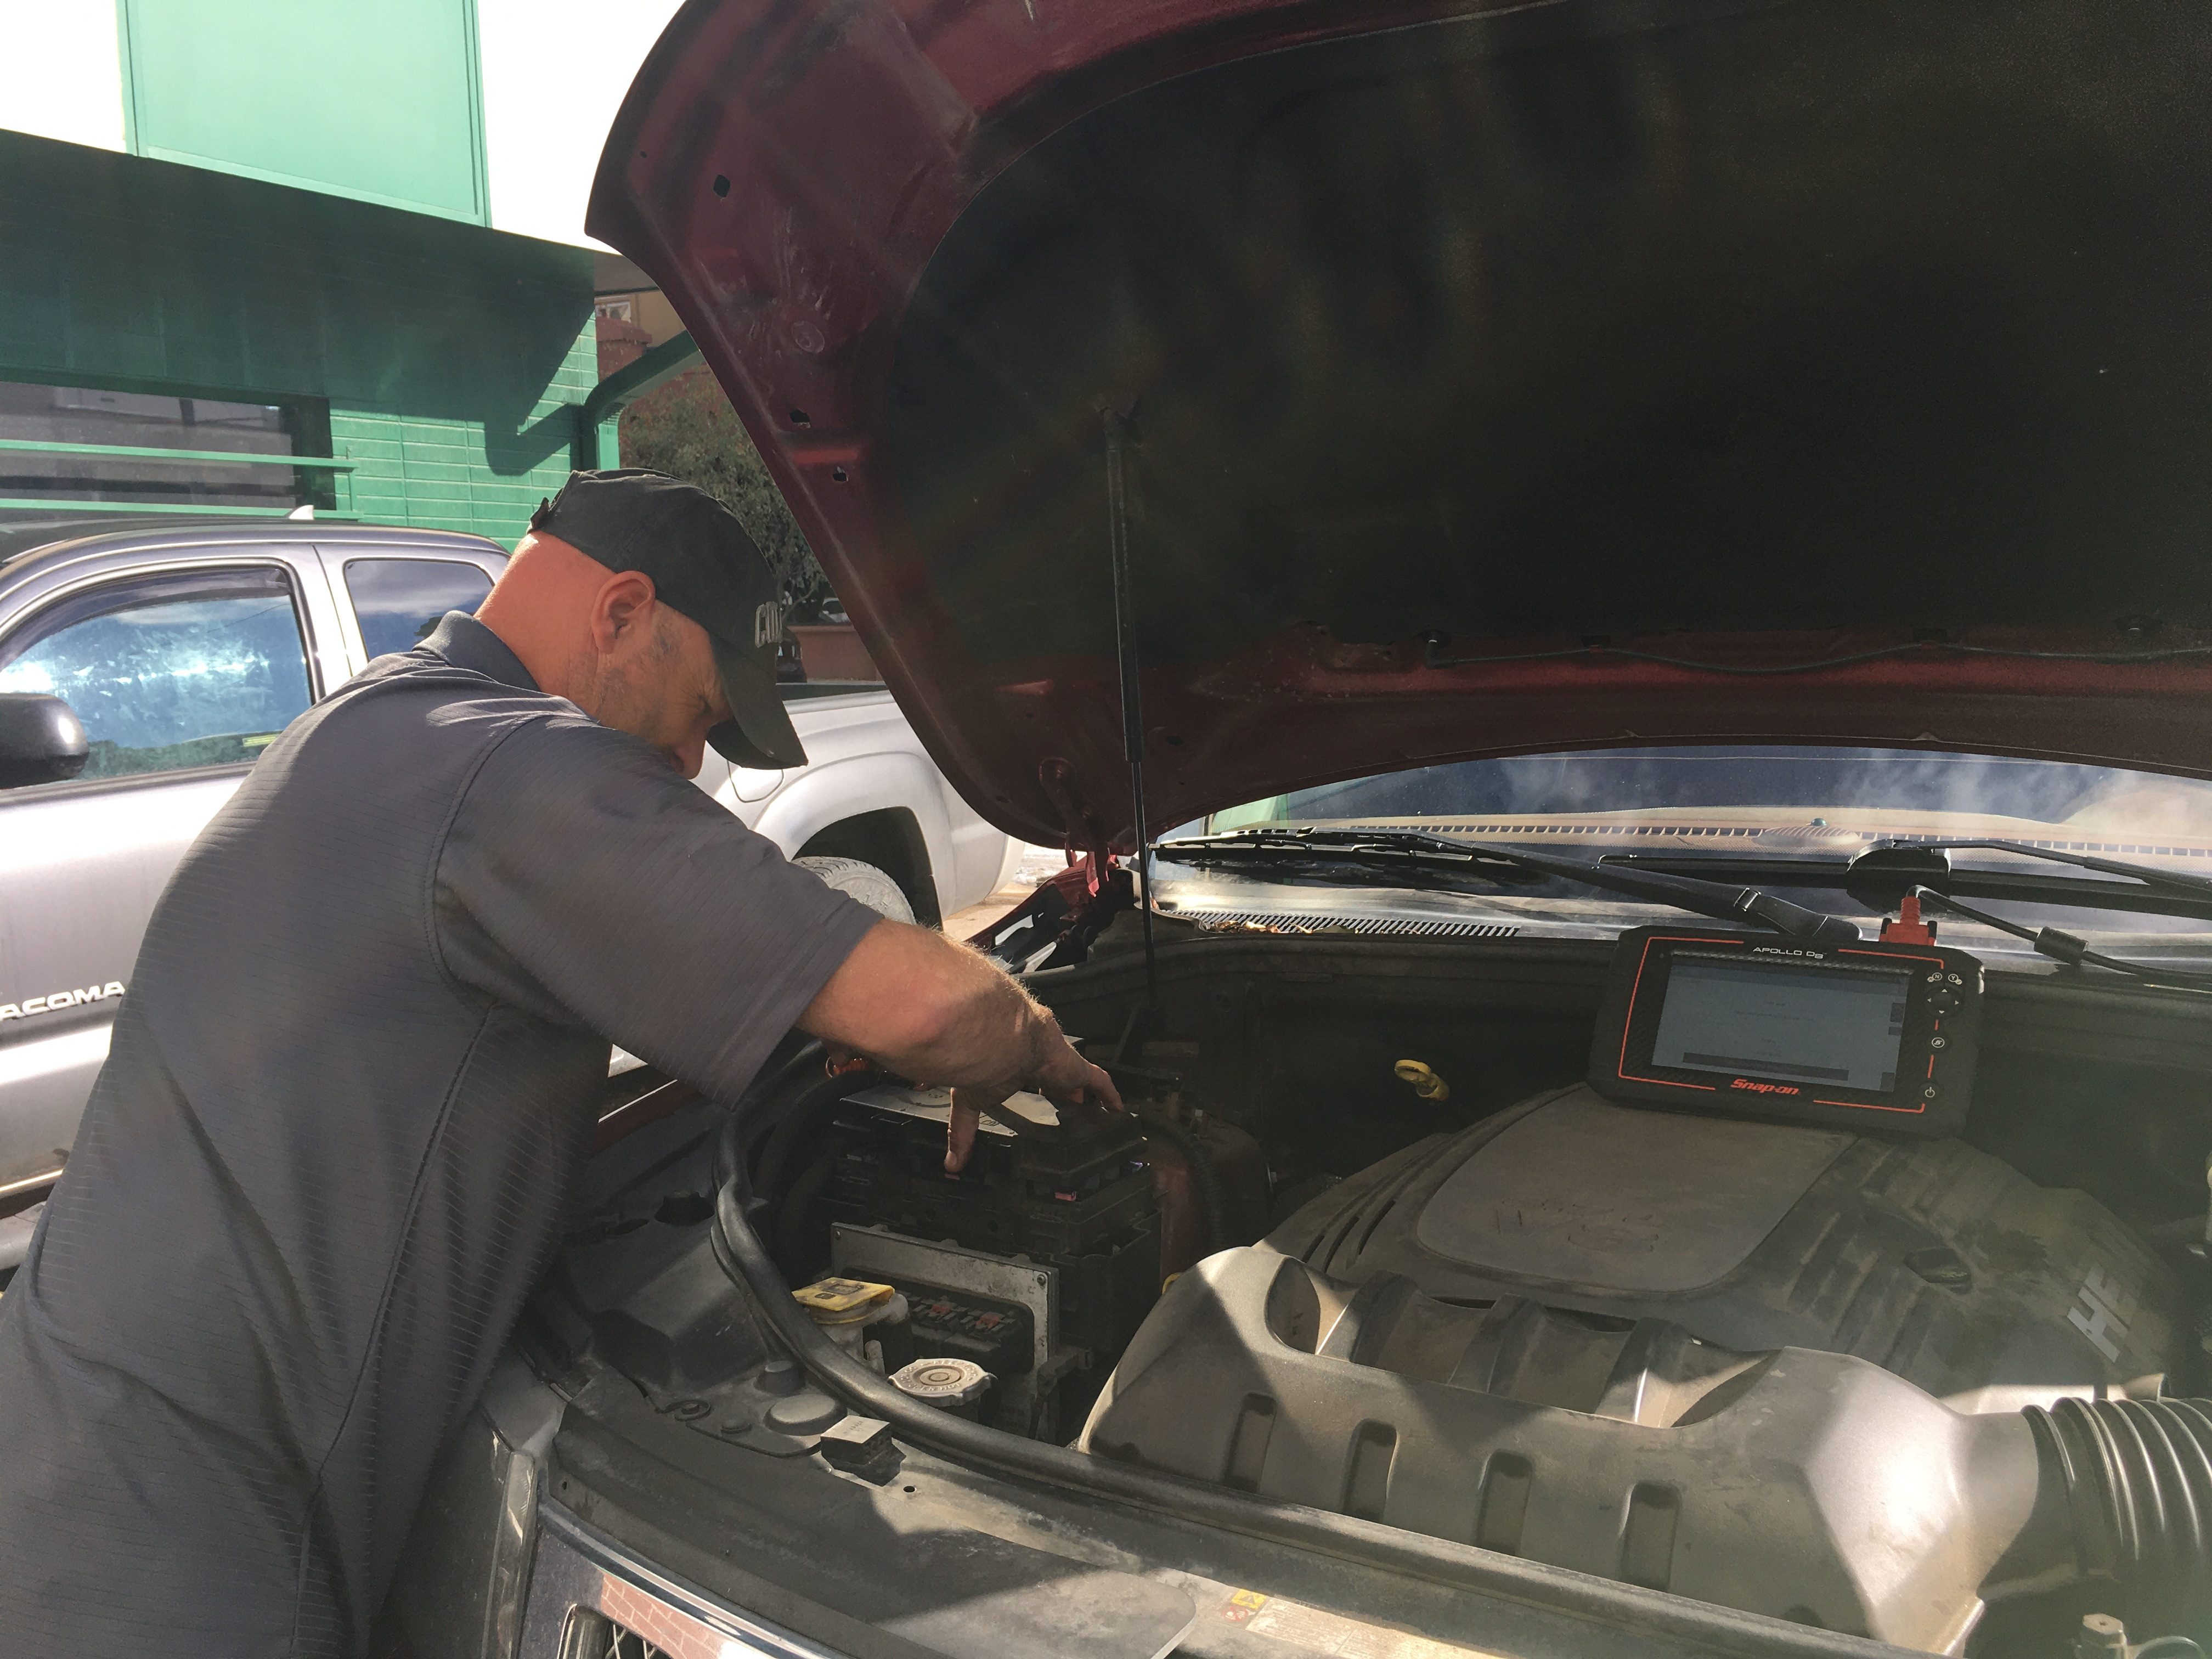 Dave working under the hood of a vehicle at Golden Triangle Auto Care